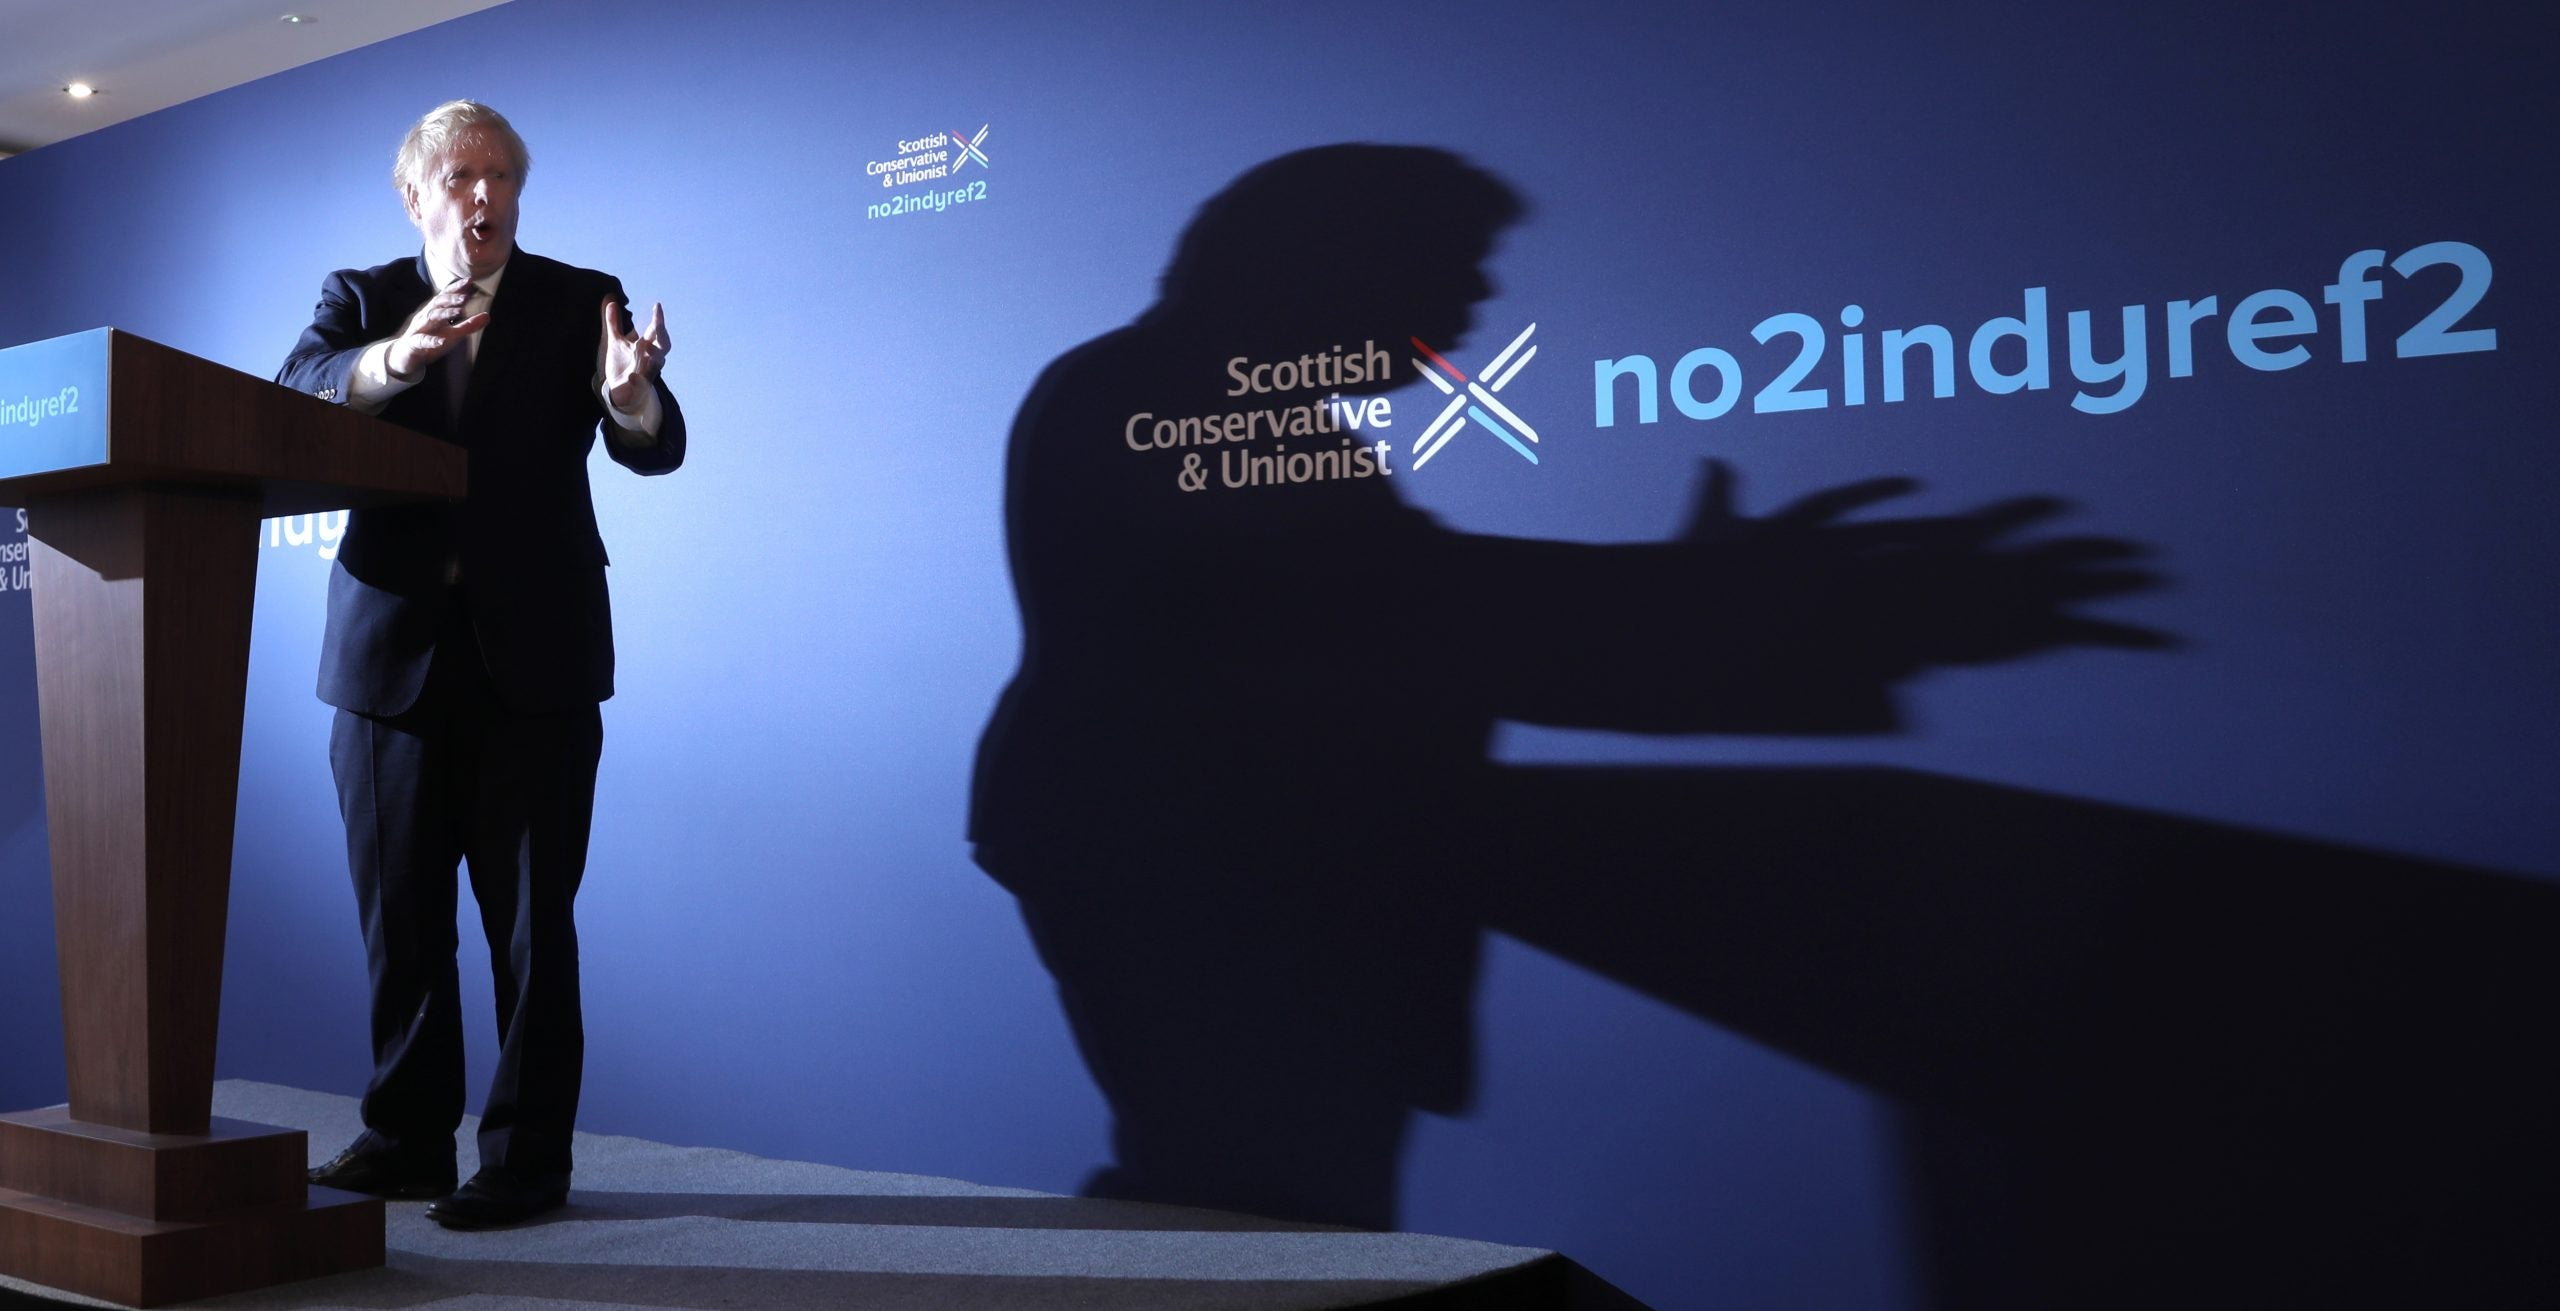 While Boris Johnson remains in charge, the Scottish independence movement is unstoppable